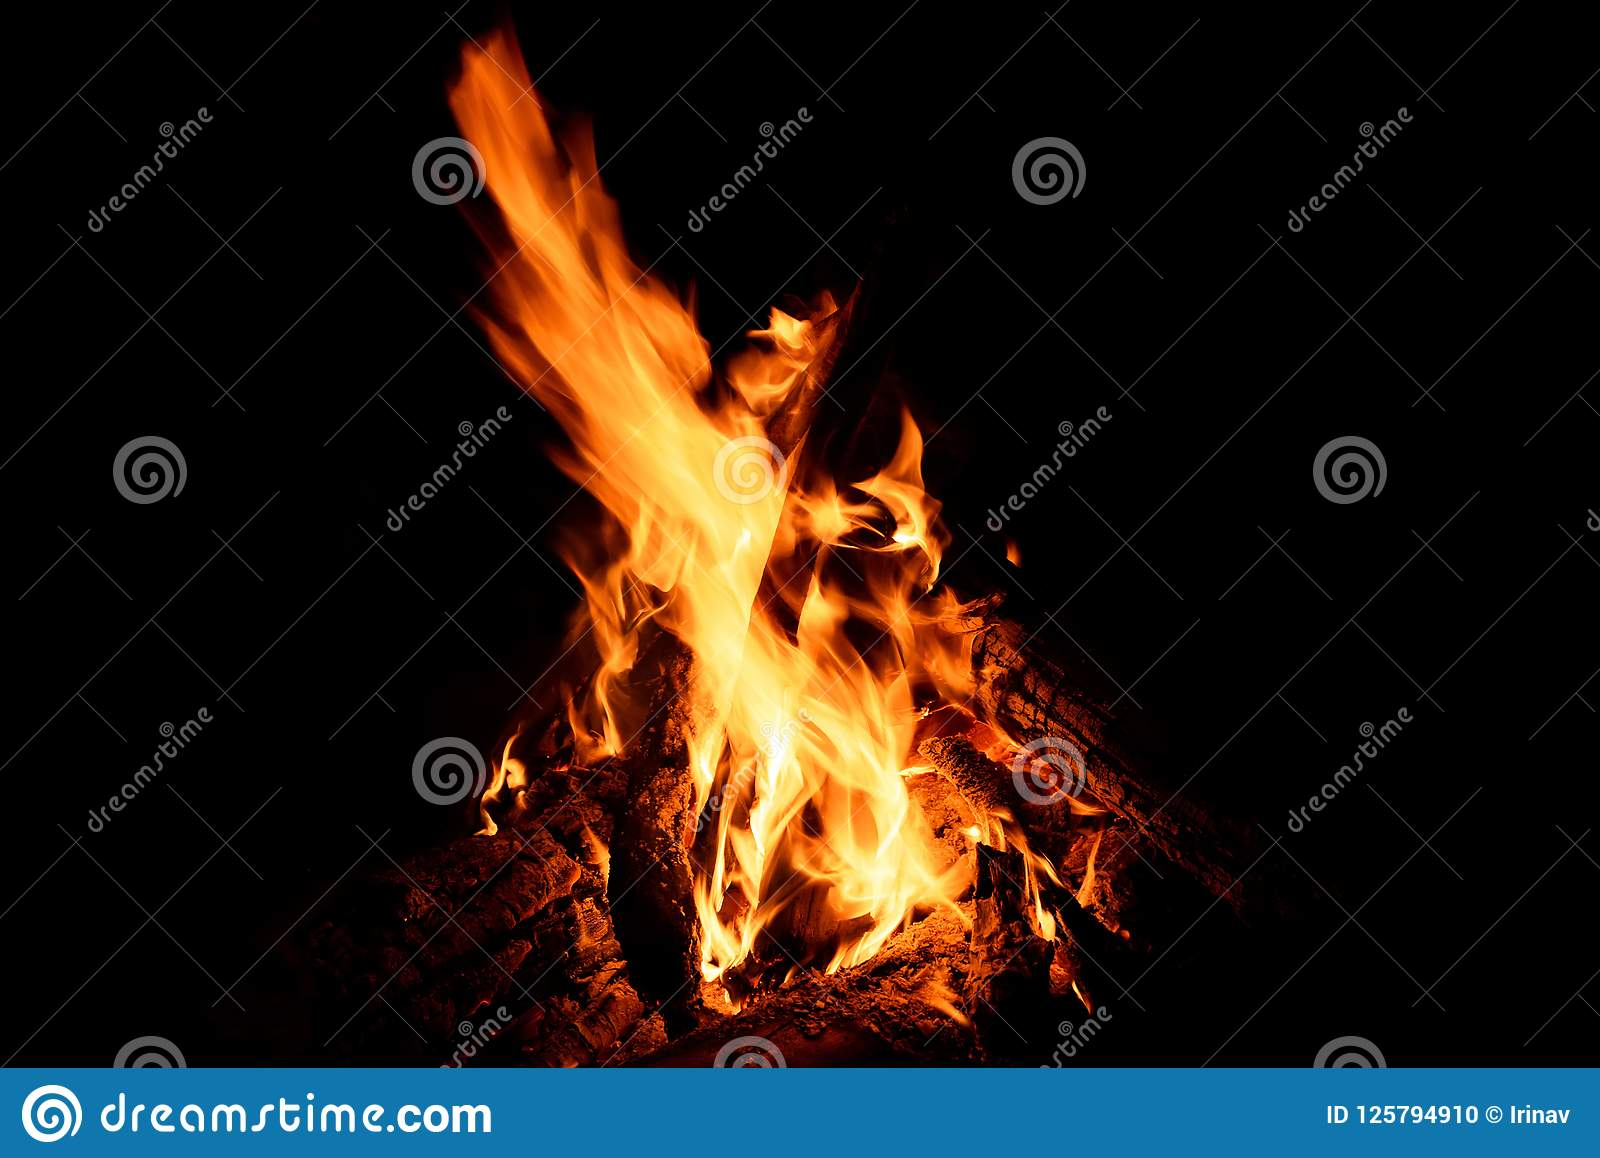 Fire bonfire flame spurts stock photo. Image of flame ...